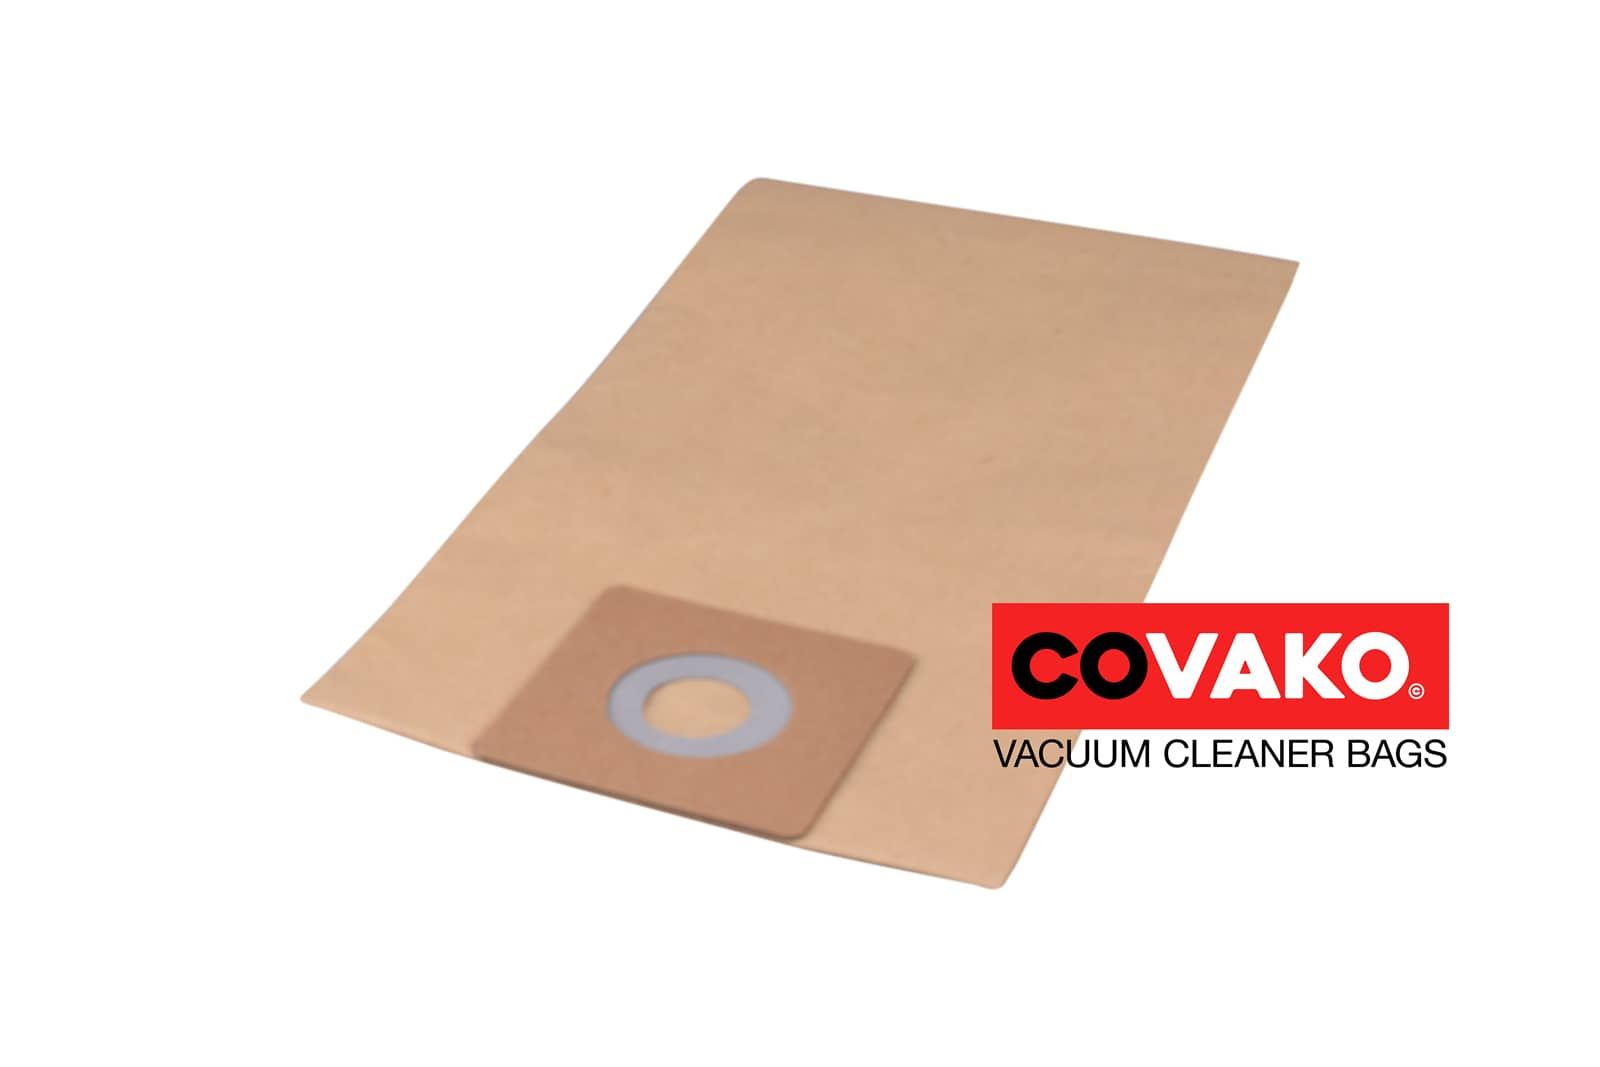 IPC YP 1/6 ECO B / Paper - IPC vacuum cleaner bags